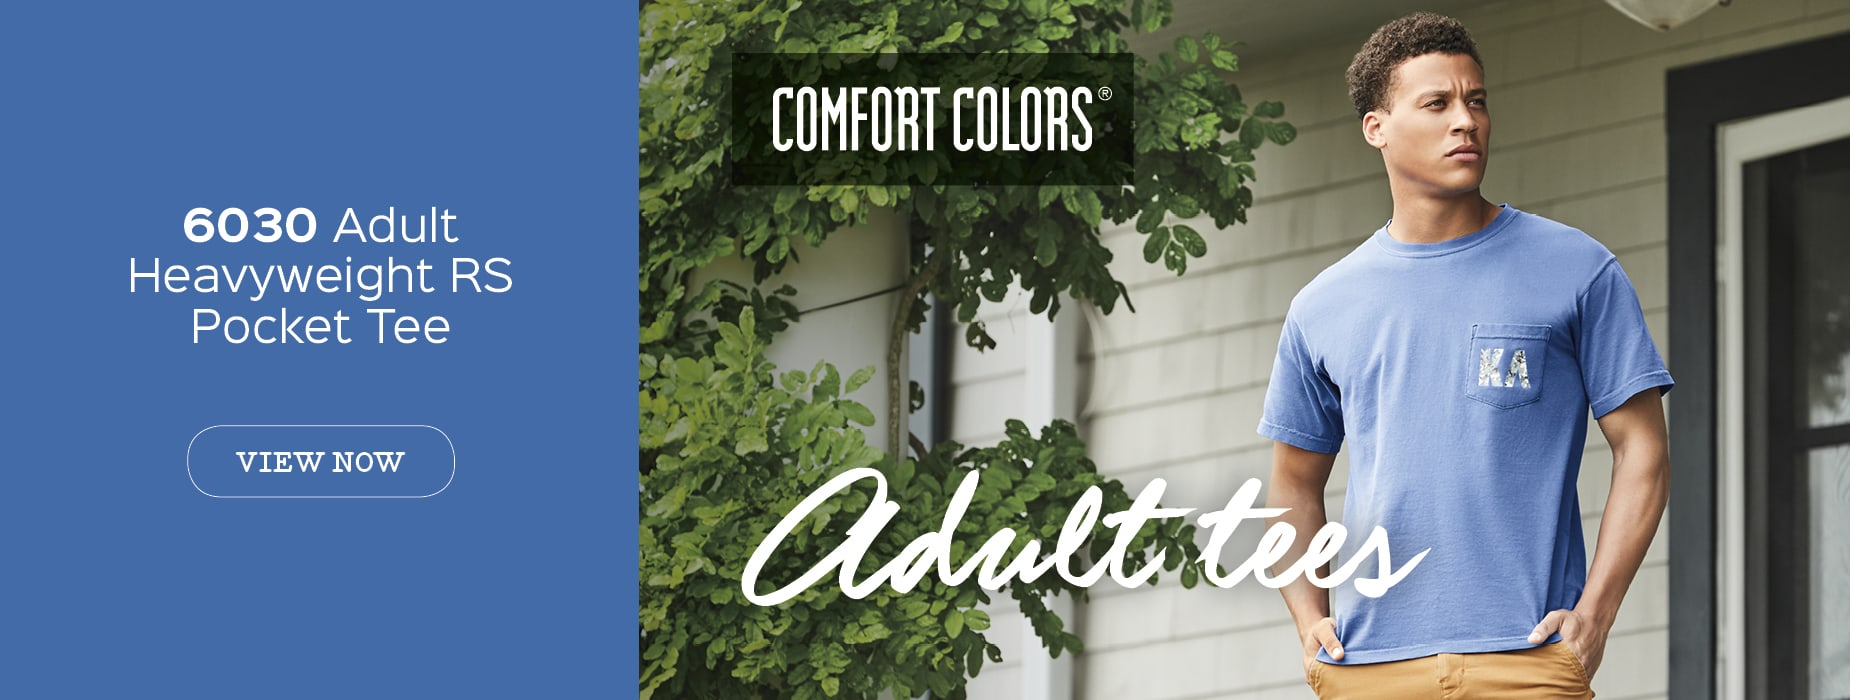 View 6030 Adult Pocket Tee from Comfort Colors